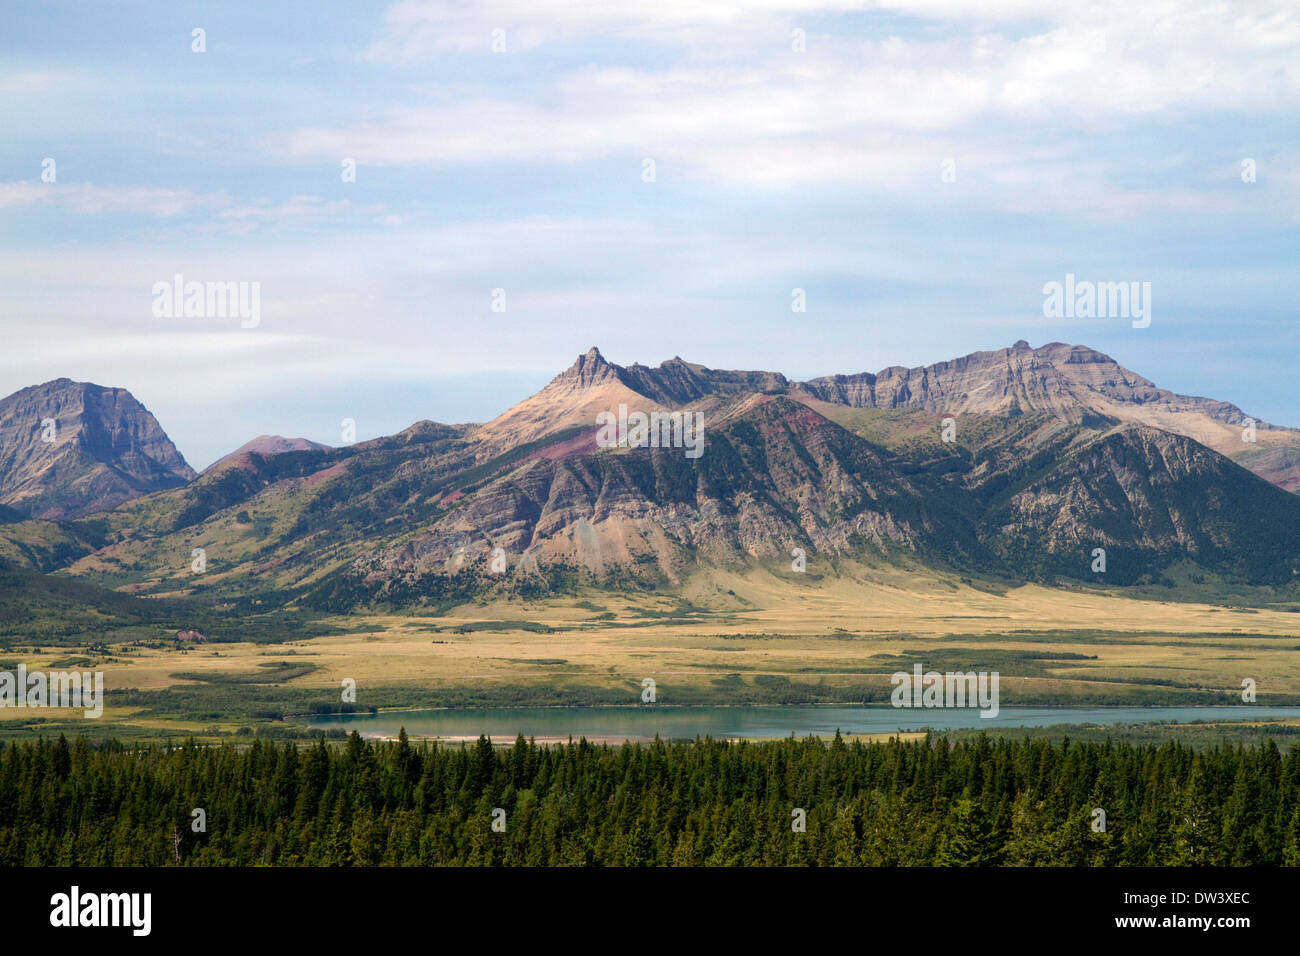 Scenic view of the Canadian Rockies in Waterton Lakes National Park, Alberta, Canada. - Stock Image